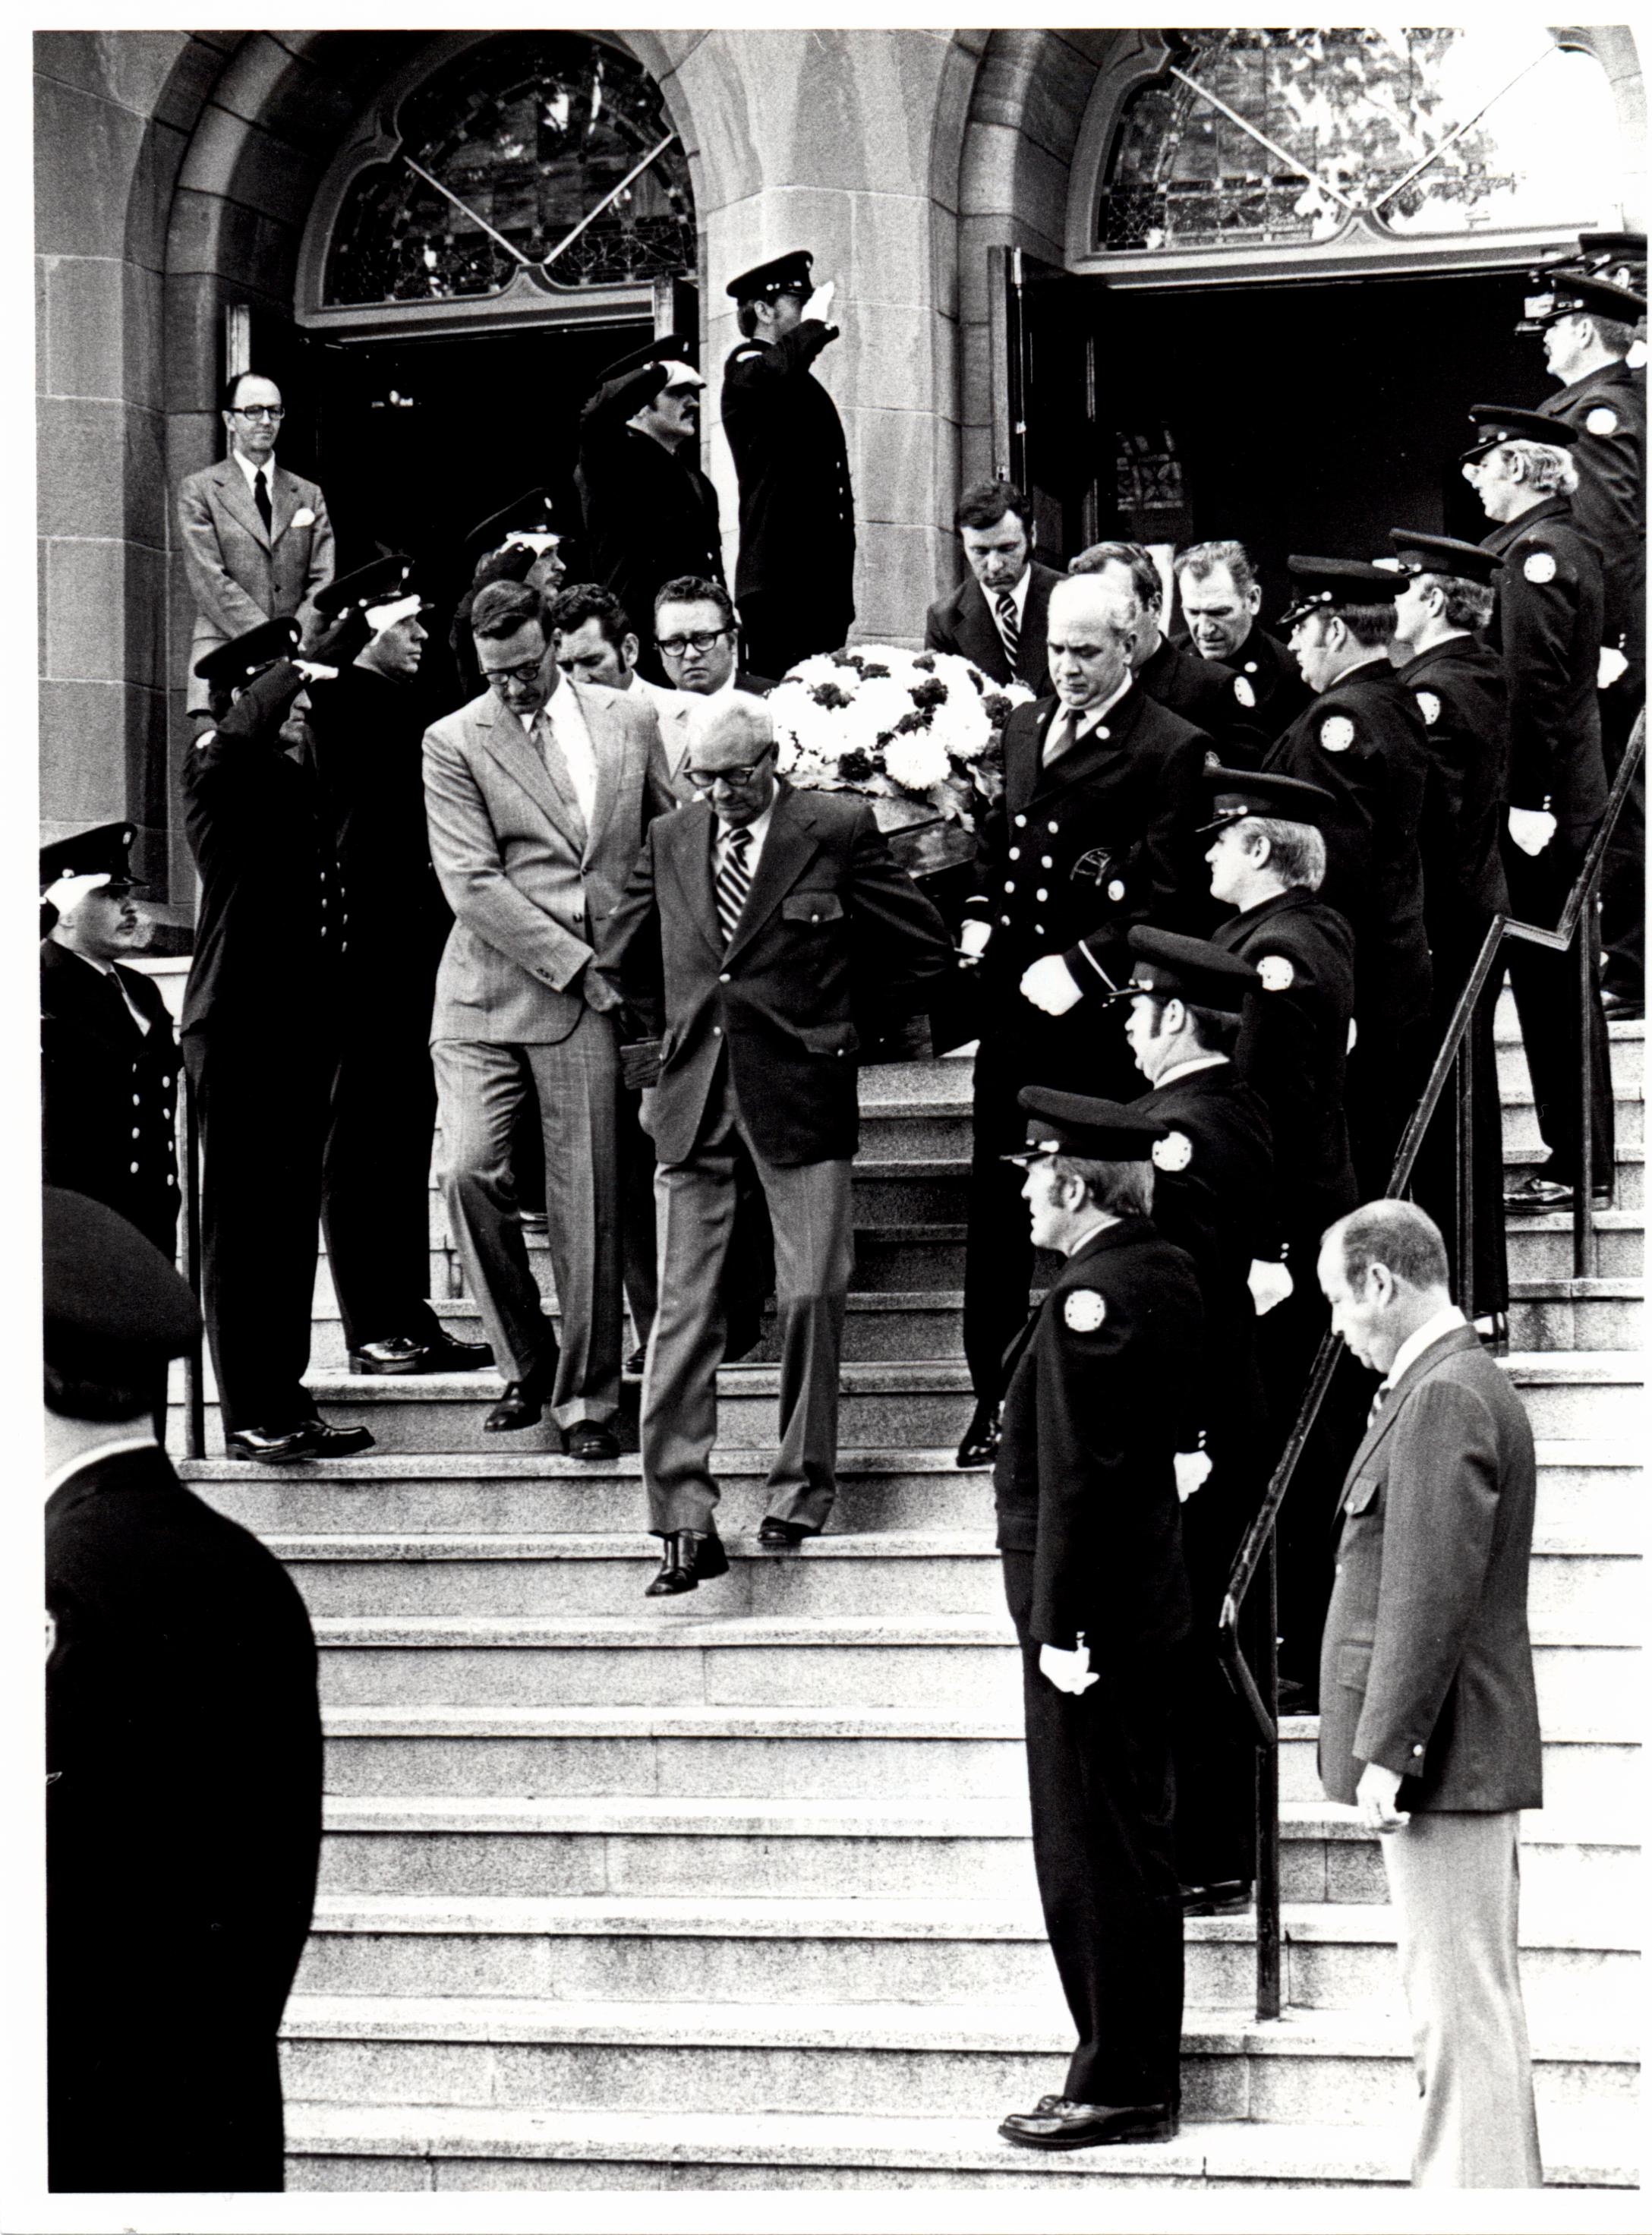 A funeral cask held by pallbearers leaves a church; the path is lined by uniformed and saluting firefighters.